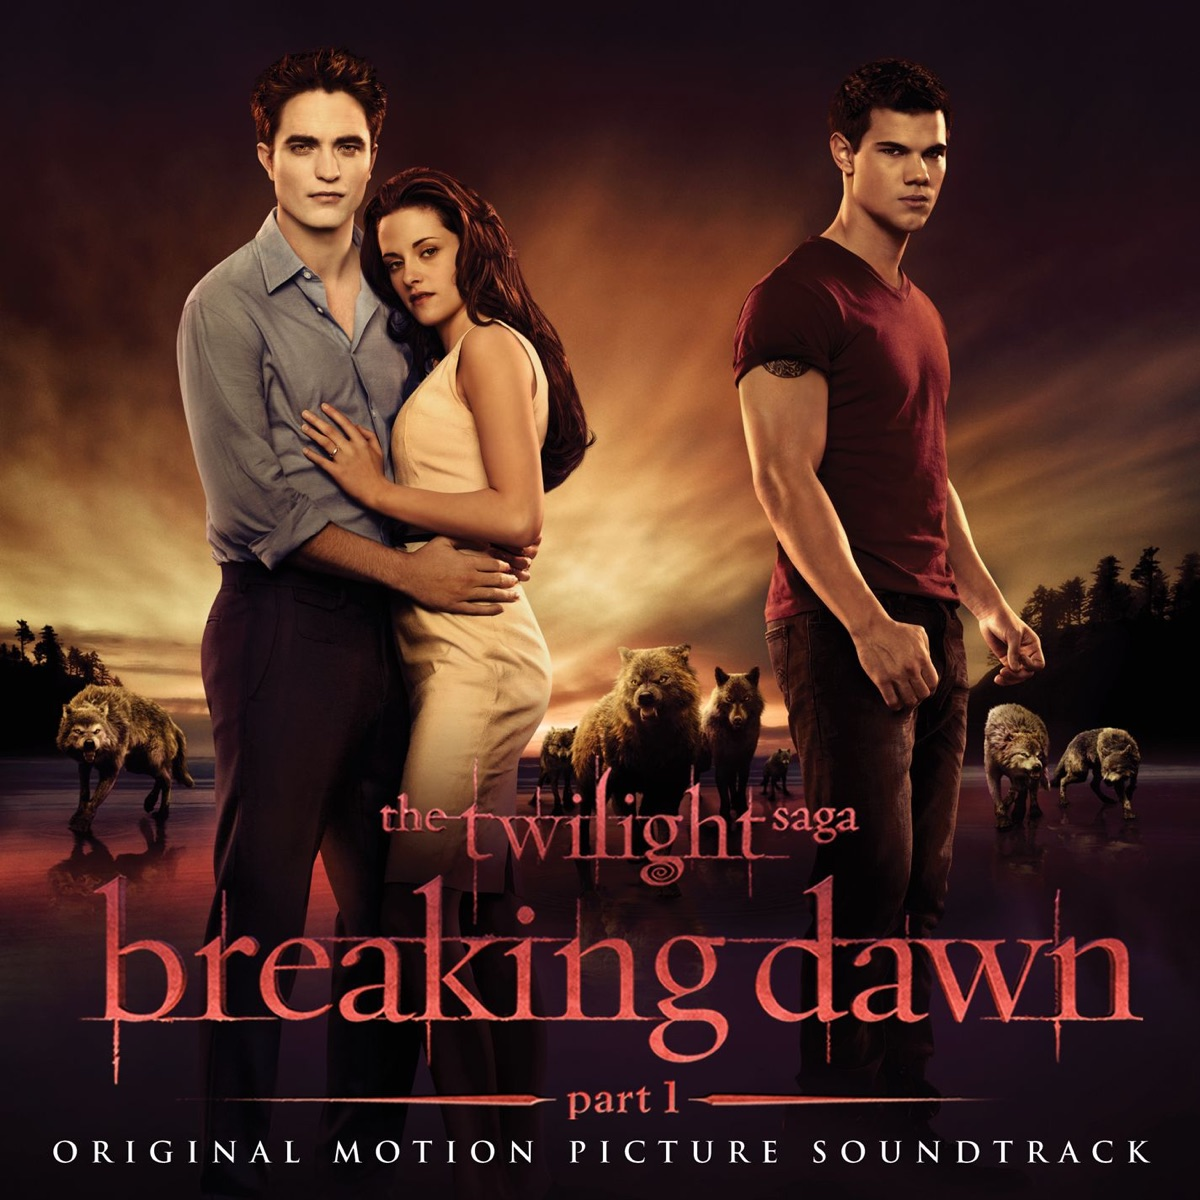 The Twilight Saga Breaking Dawn Pt 1 Original Motion Picture Soundtrack Deluxe Version Various Artists CD cover